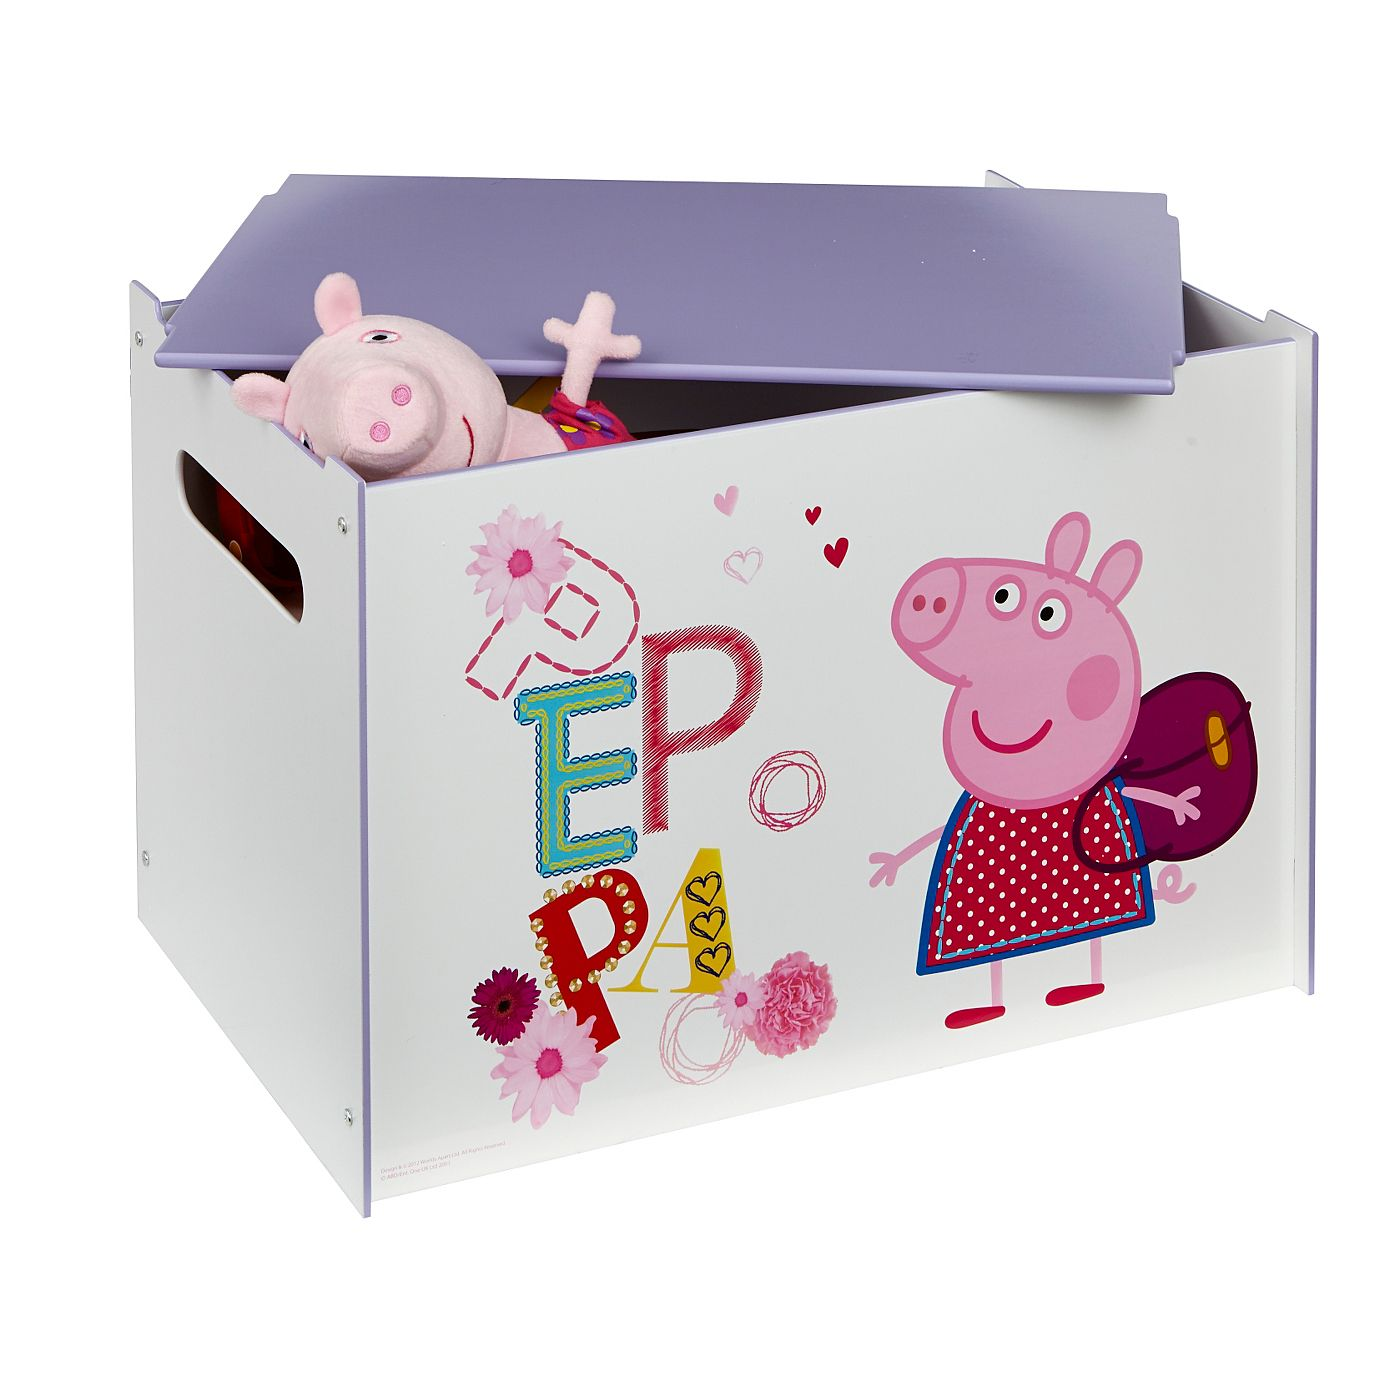 Need somewhere to stash the toys? The Peppa Pig toybox from George ...